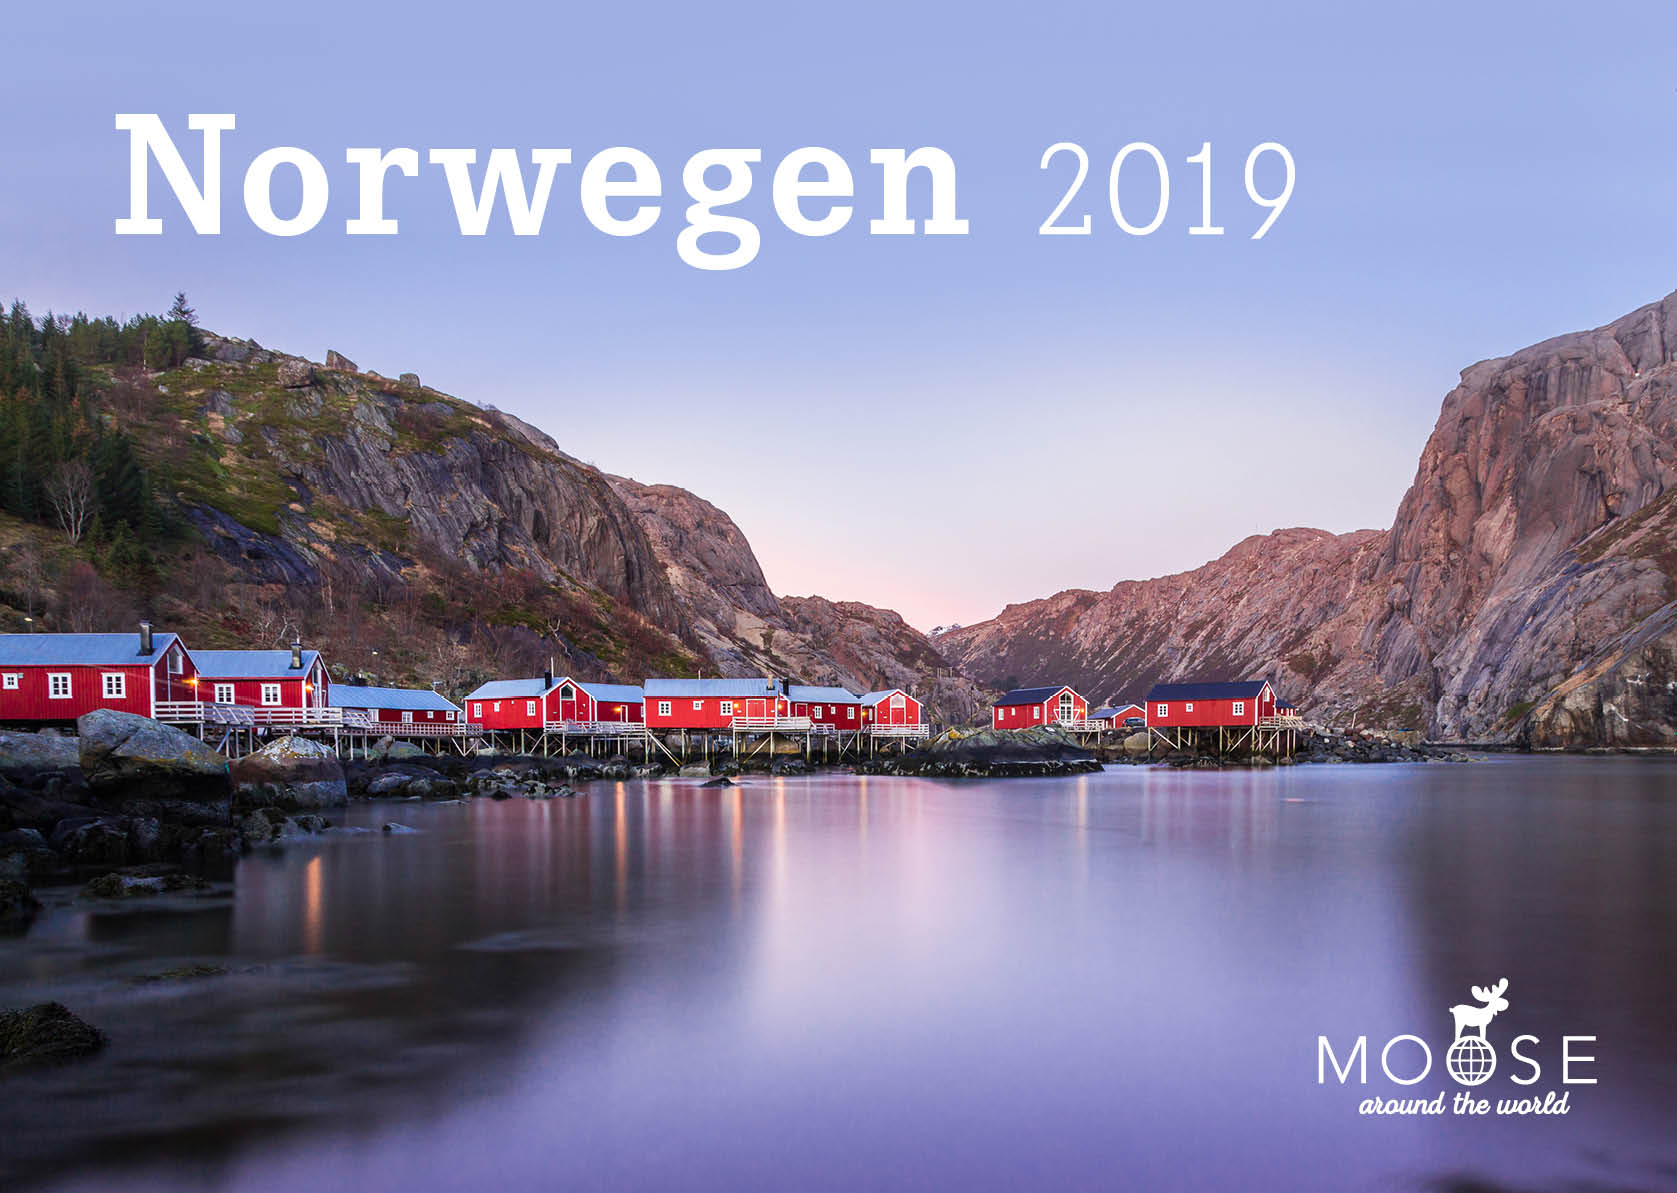 kalender norwegen 2019 fotokalender von moose around the. Black Bedroom Furniture Sets. Home Design Ideas